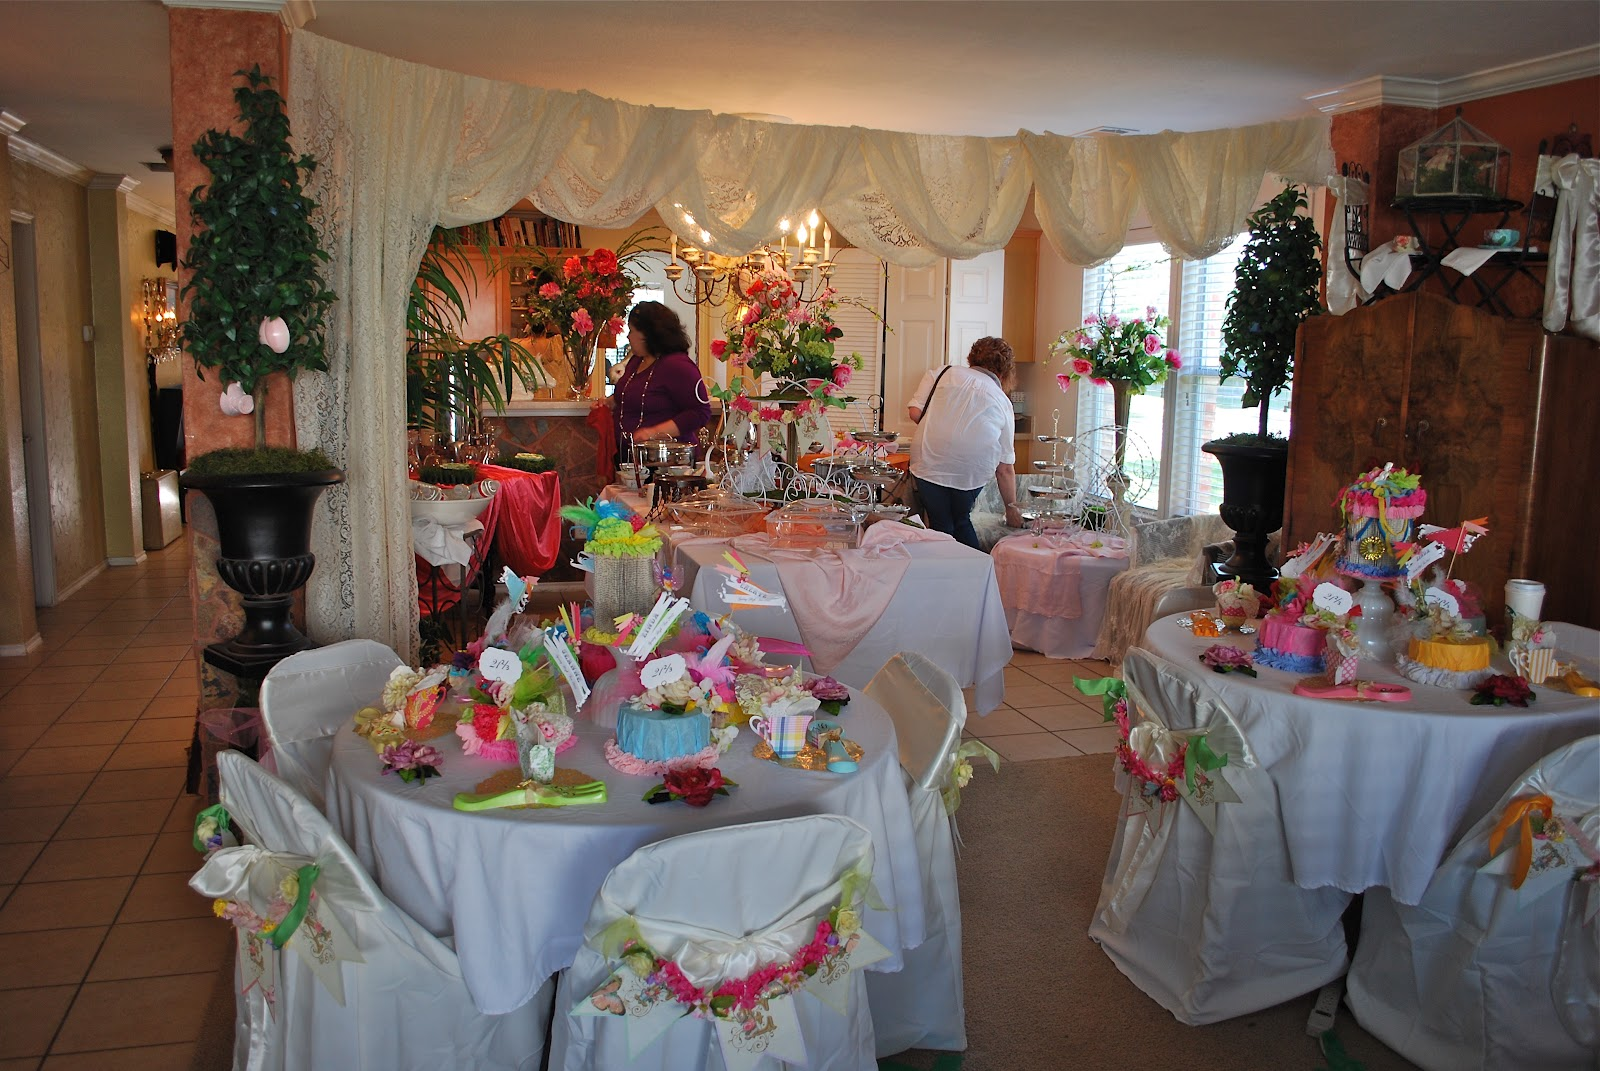 High Tea Table Decor : The decor for this event was in theme for the High Tea and felt light ...